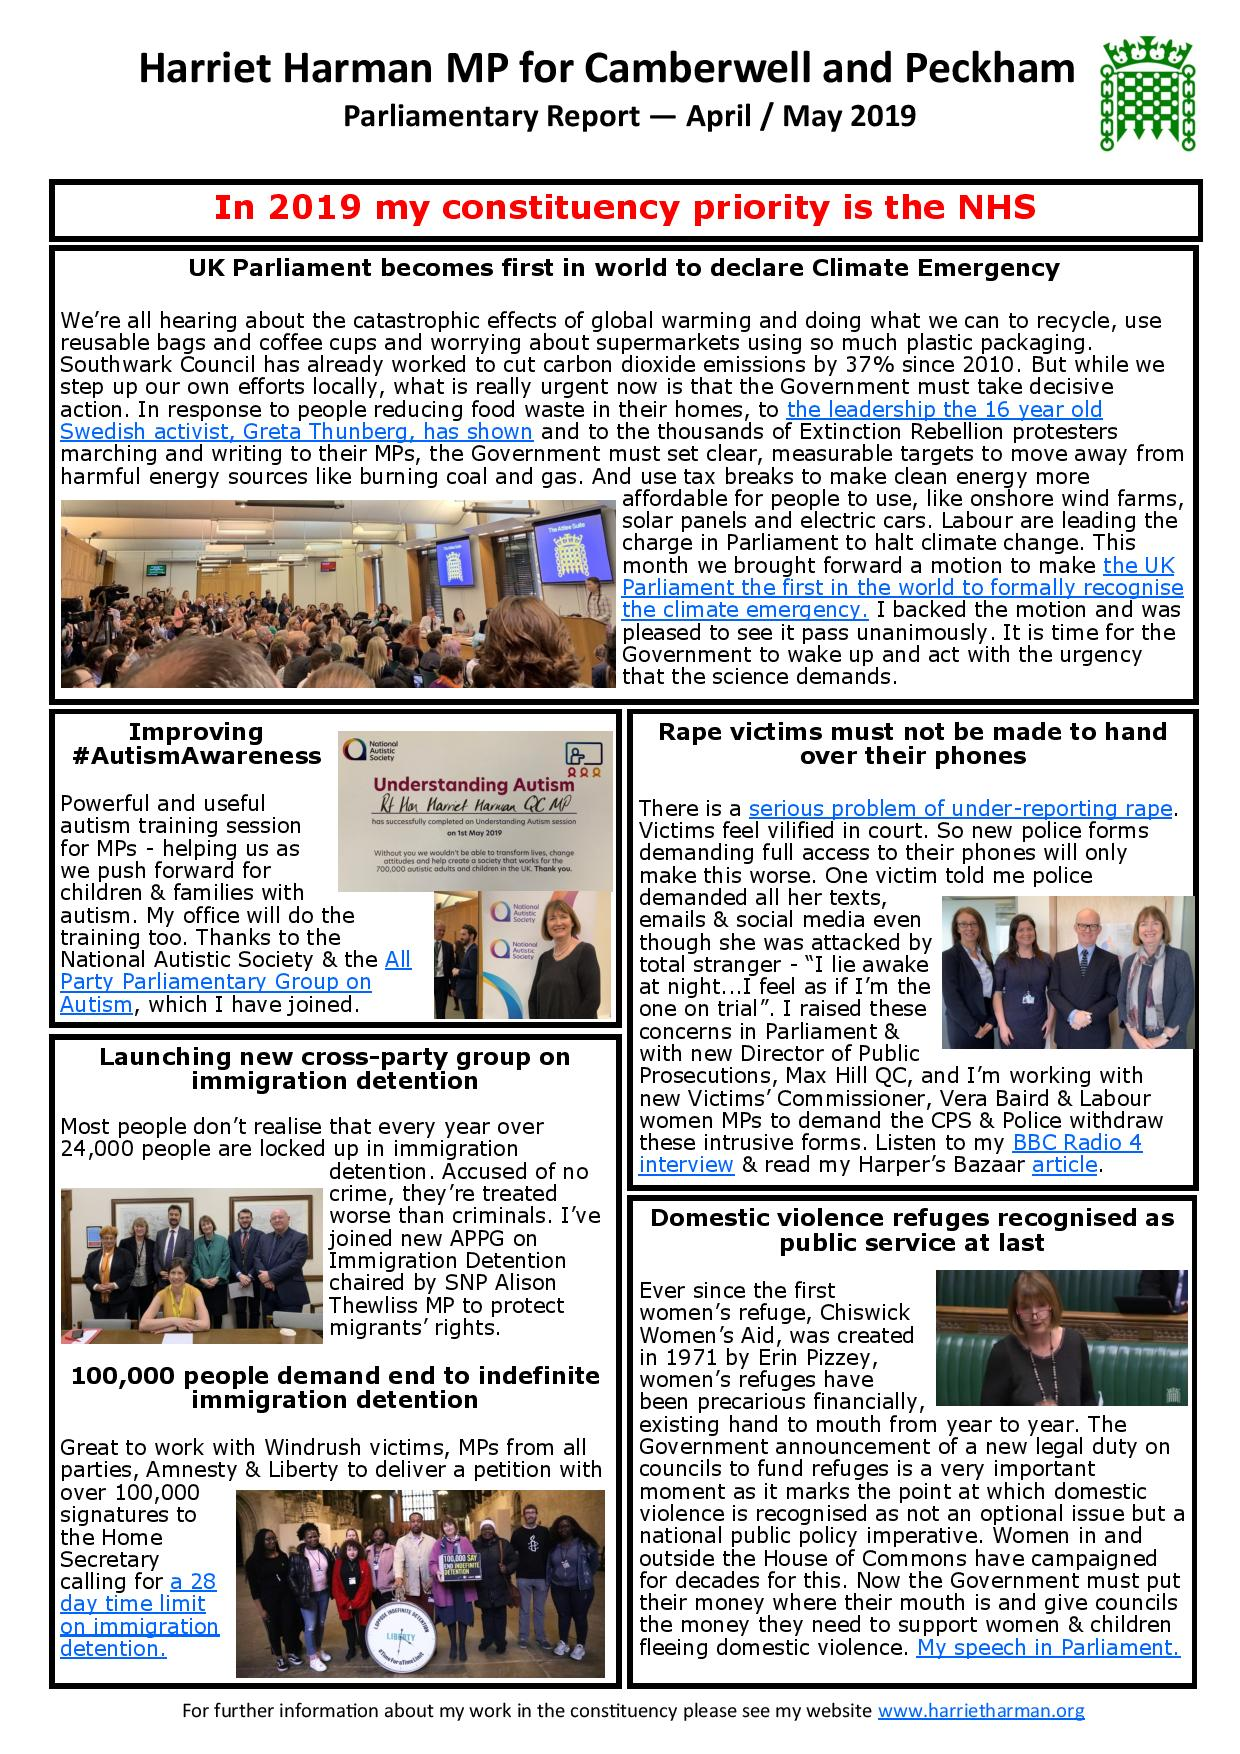 GC_Report_April_May_2019-page-001.jpg